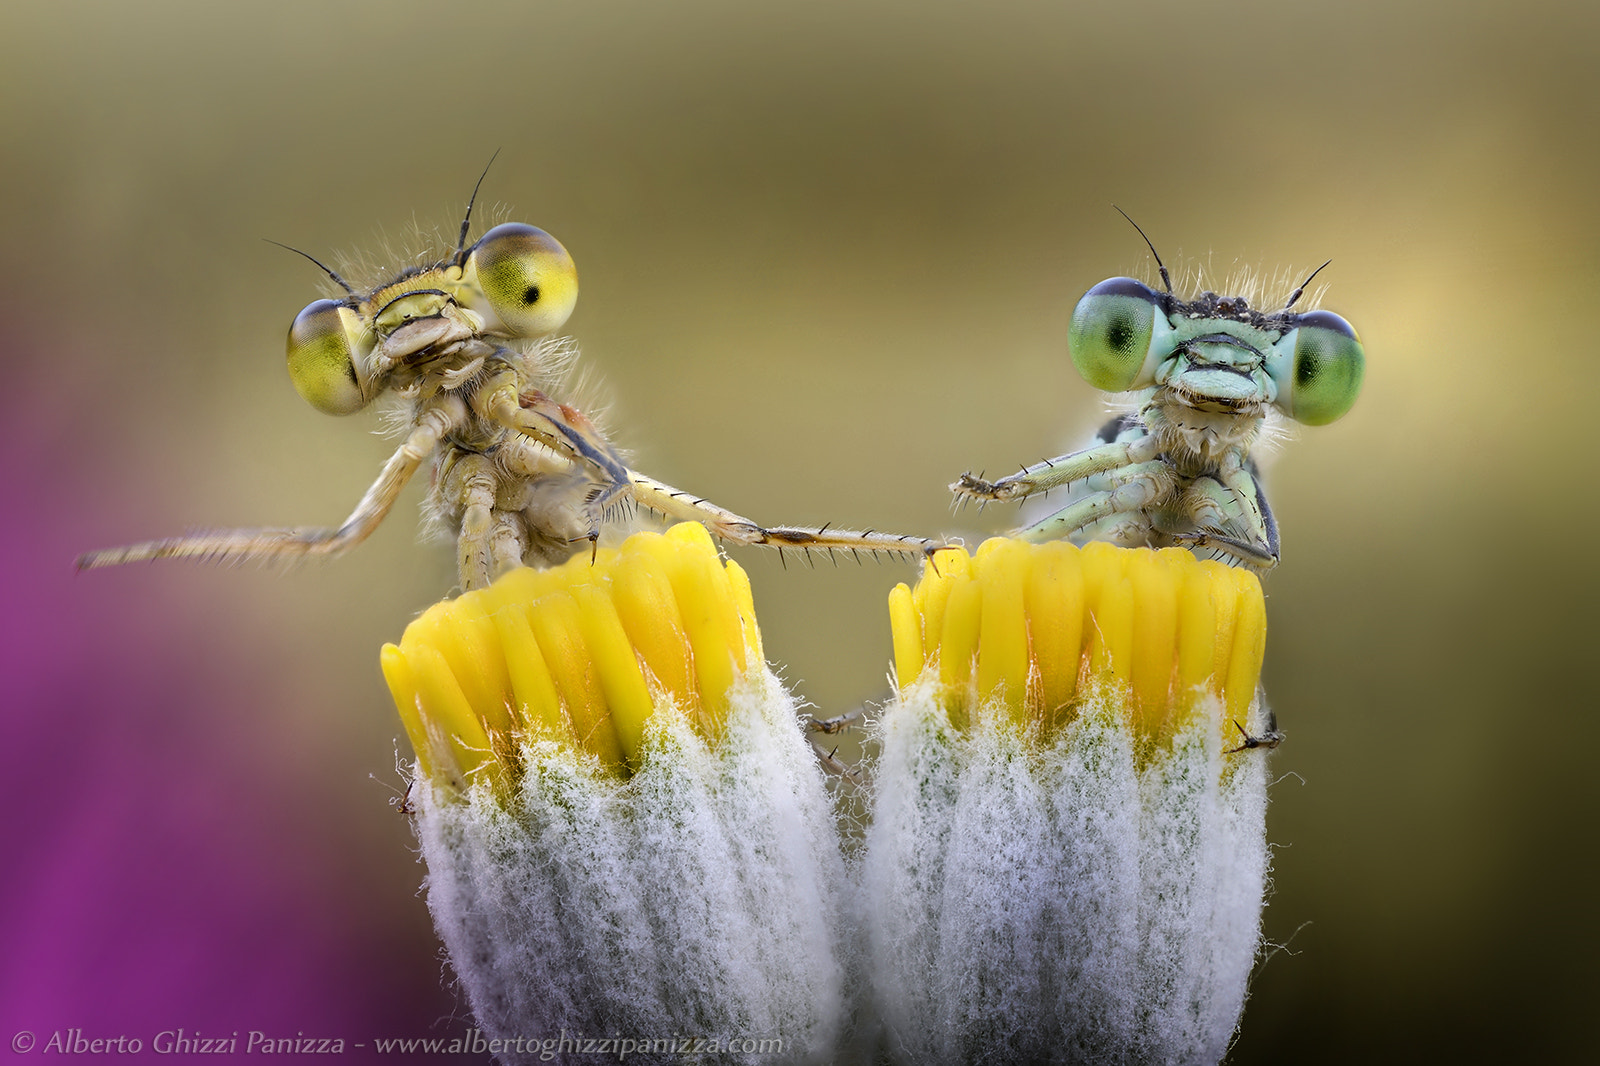 Photograph We just wanna play drums! by Alberto Ghizzi Panizza on 500px